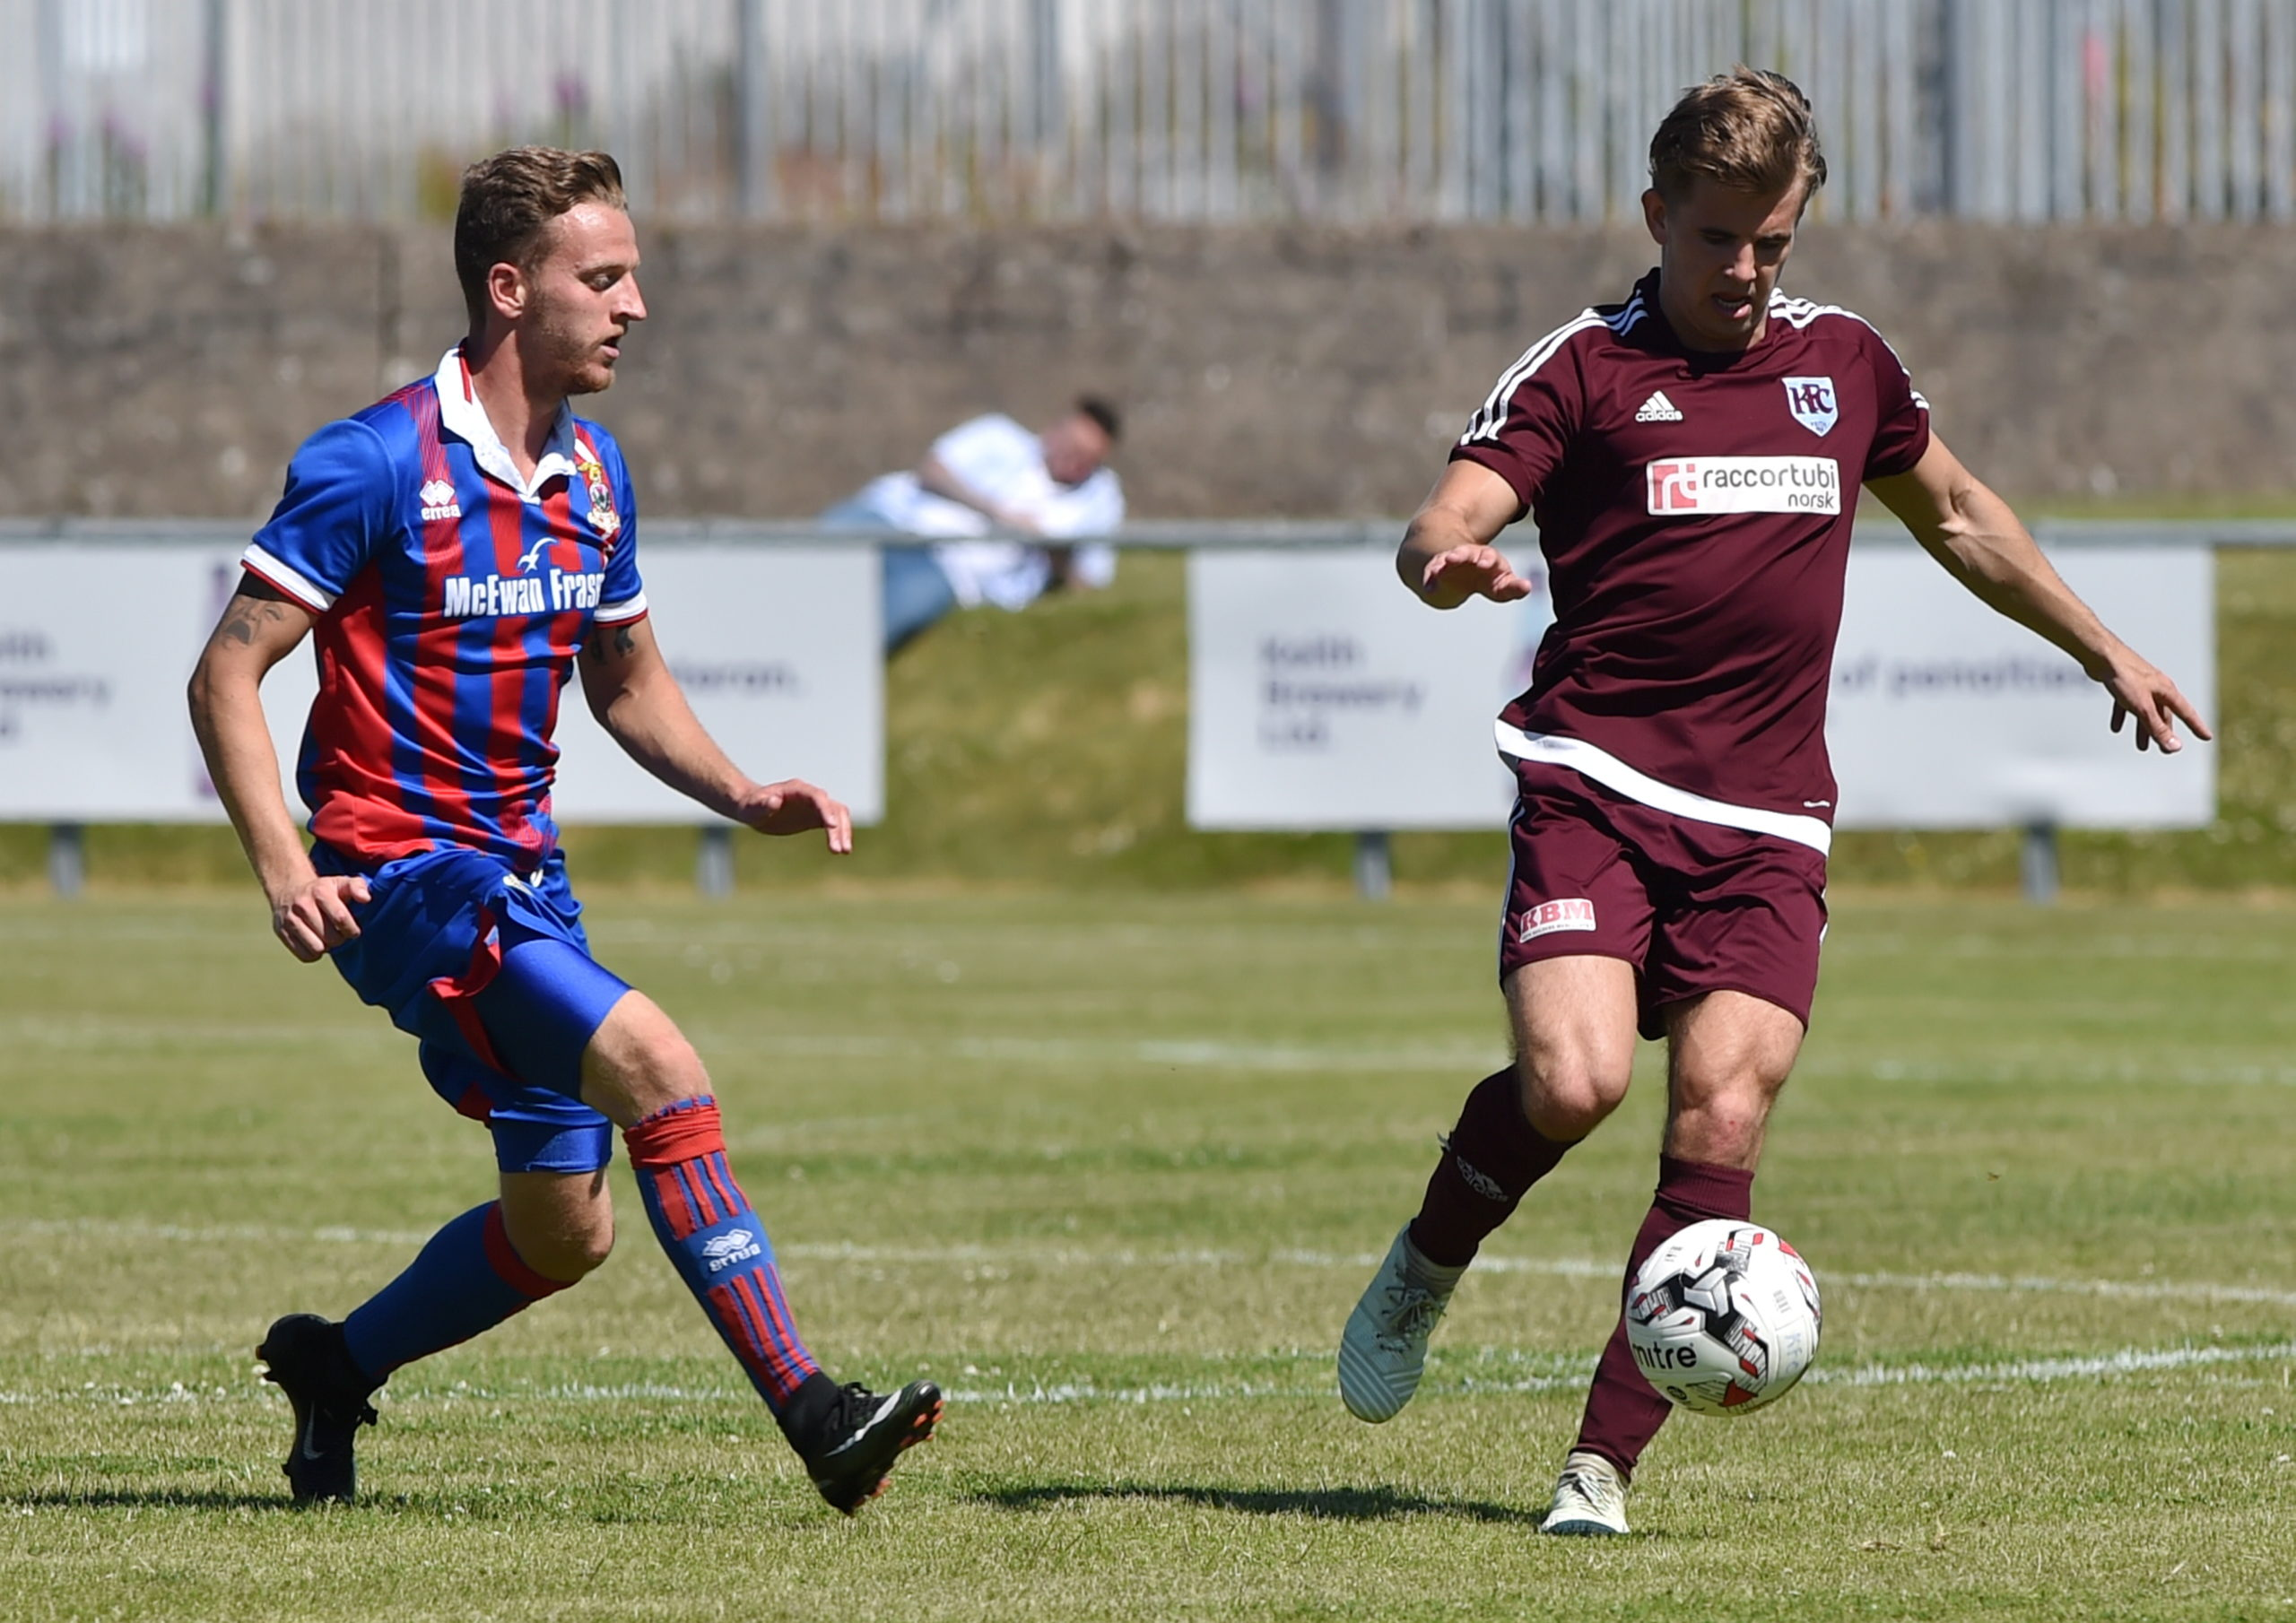 Ryan Keir takes on Caley Thistle's Tom Walsh in a pre-season friendly in 2018. Picture by Kenny Elrick